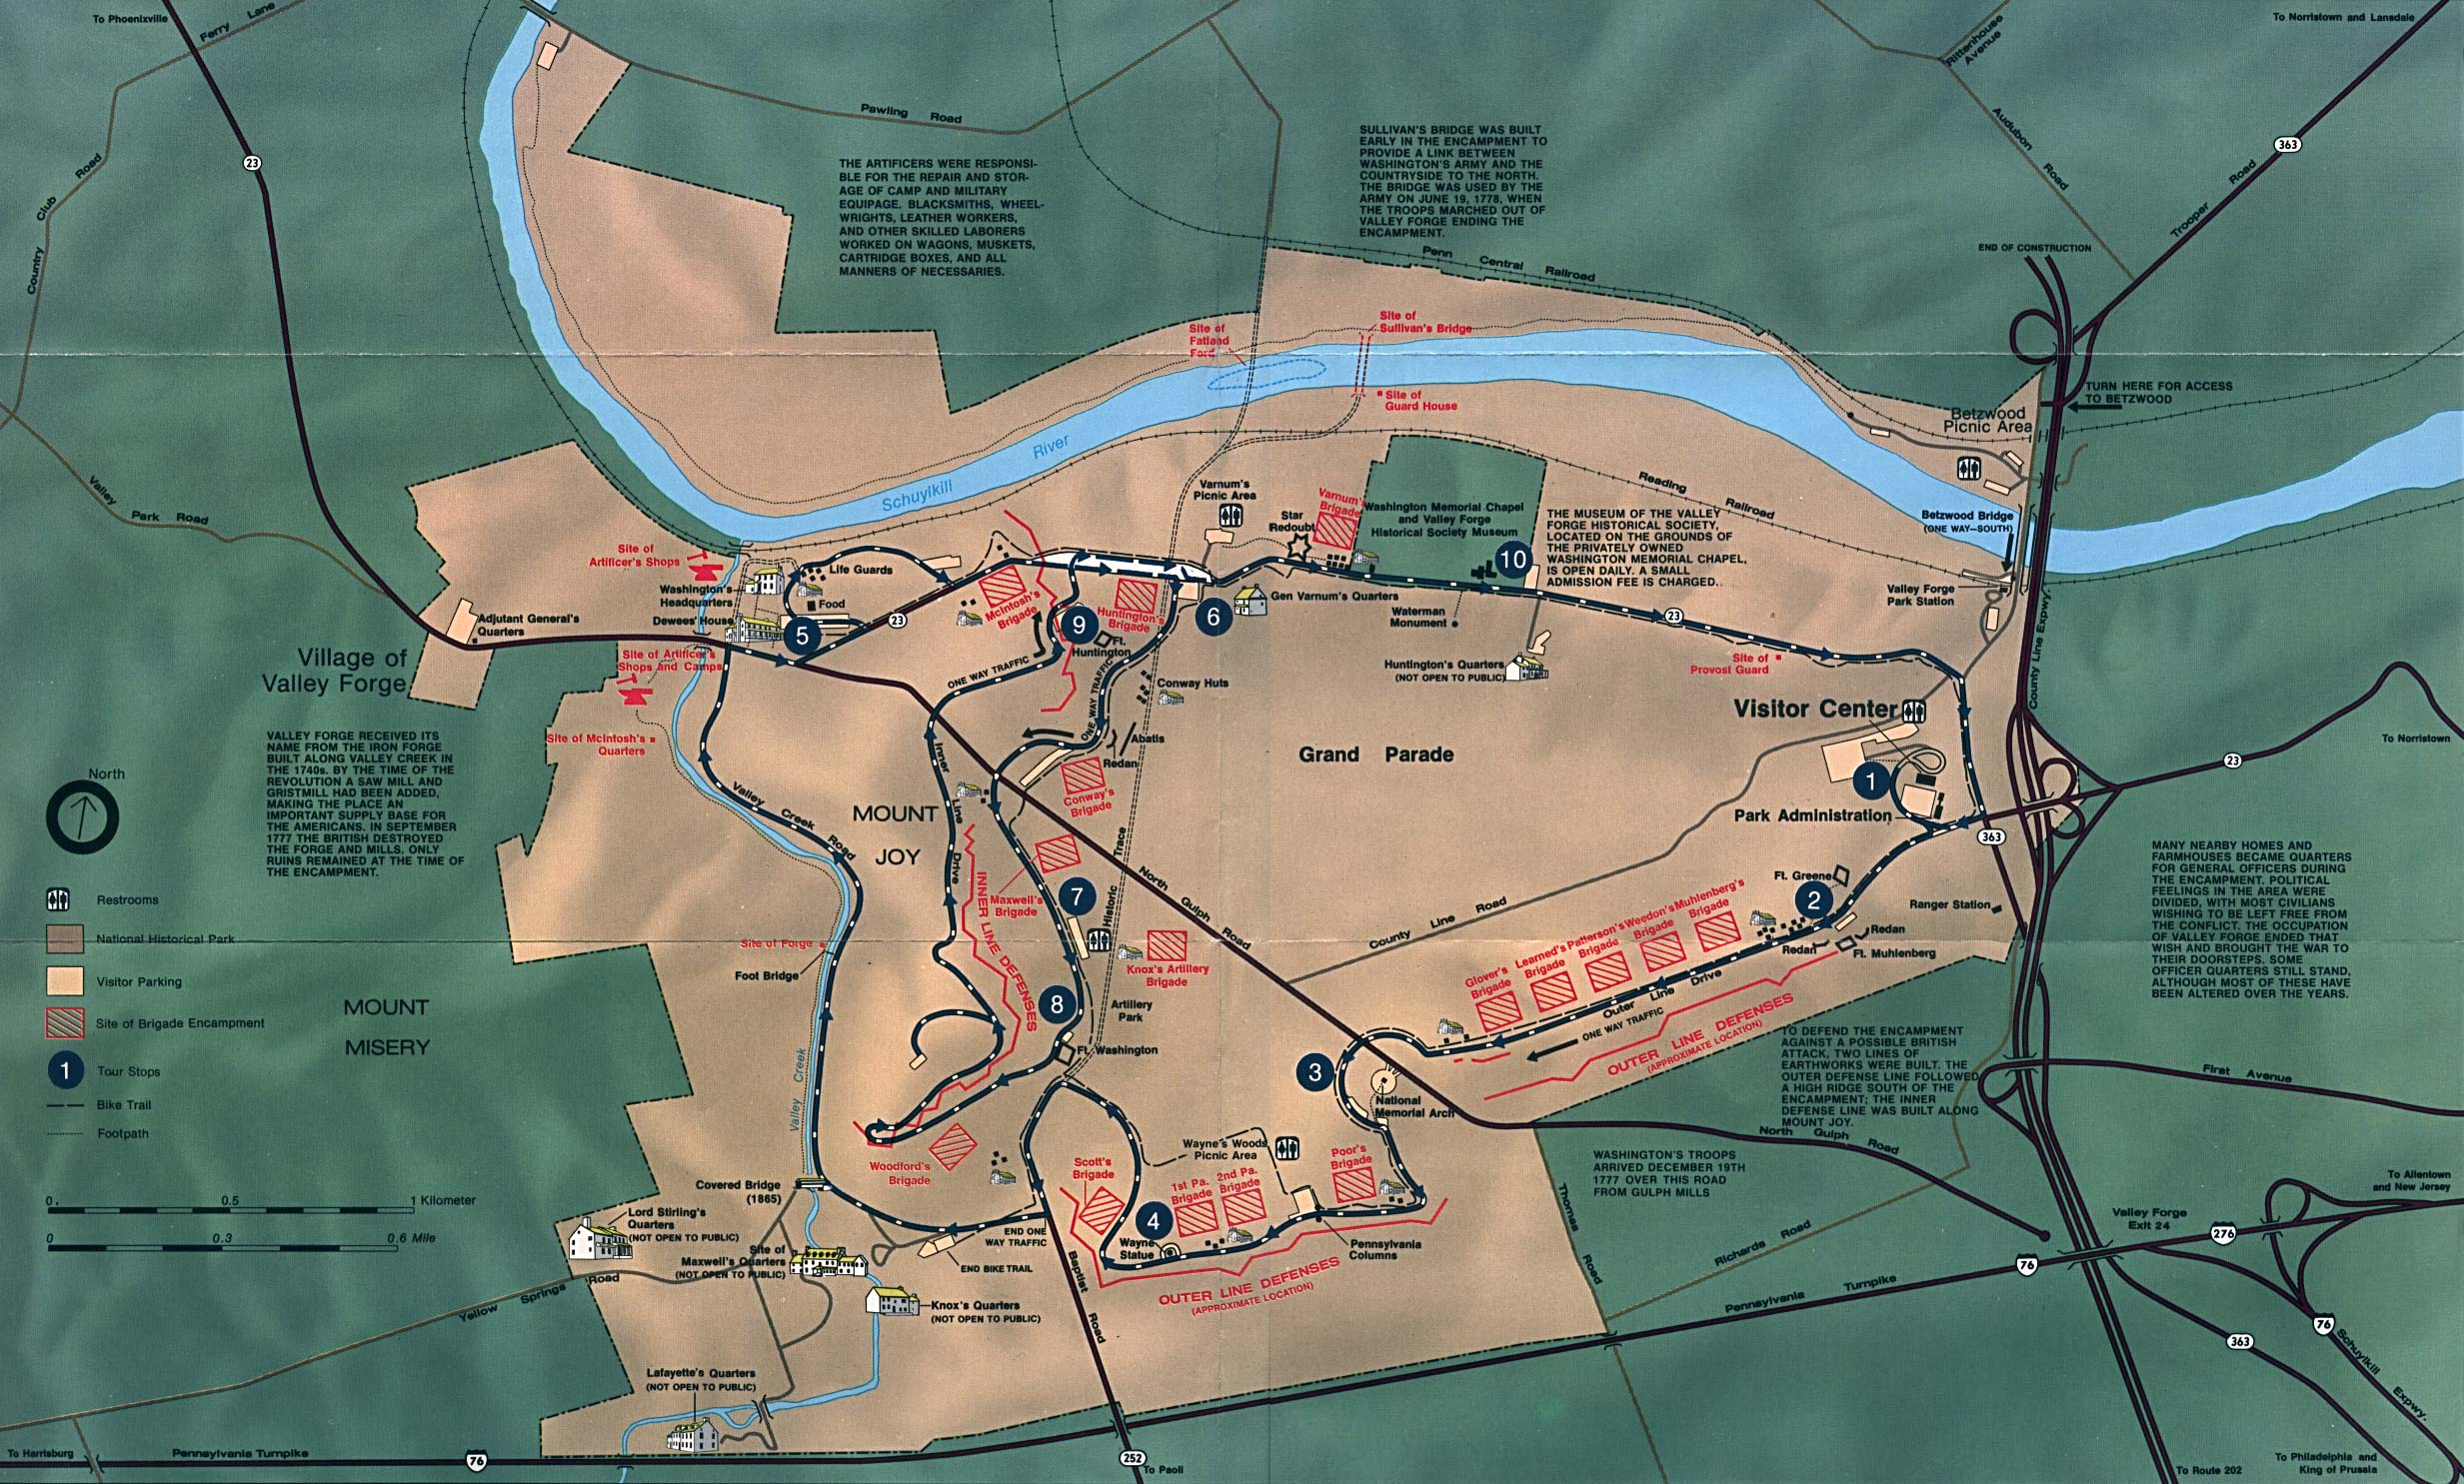 valley forge battle Start studying valley forge-virginia plan learn vocabulary, terms, and more with flashcards, games, and other study tools.